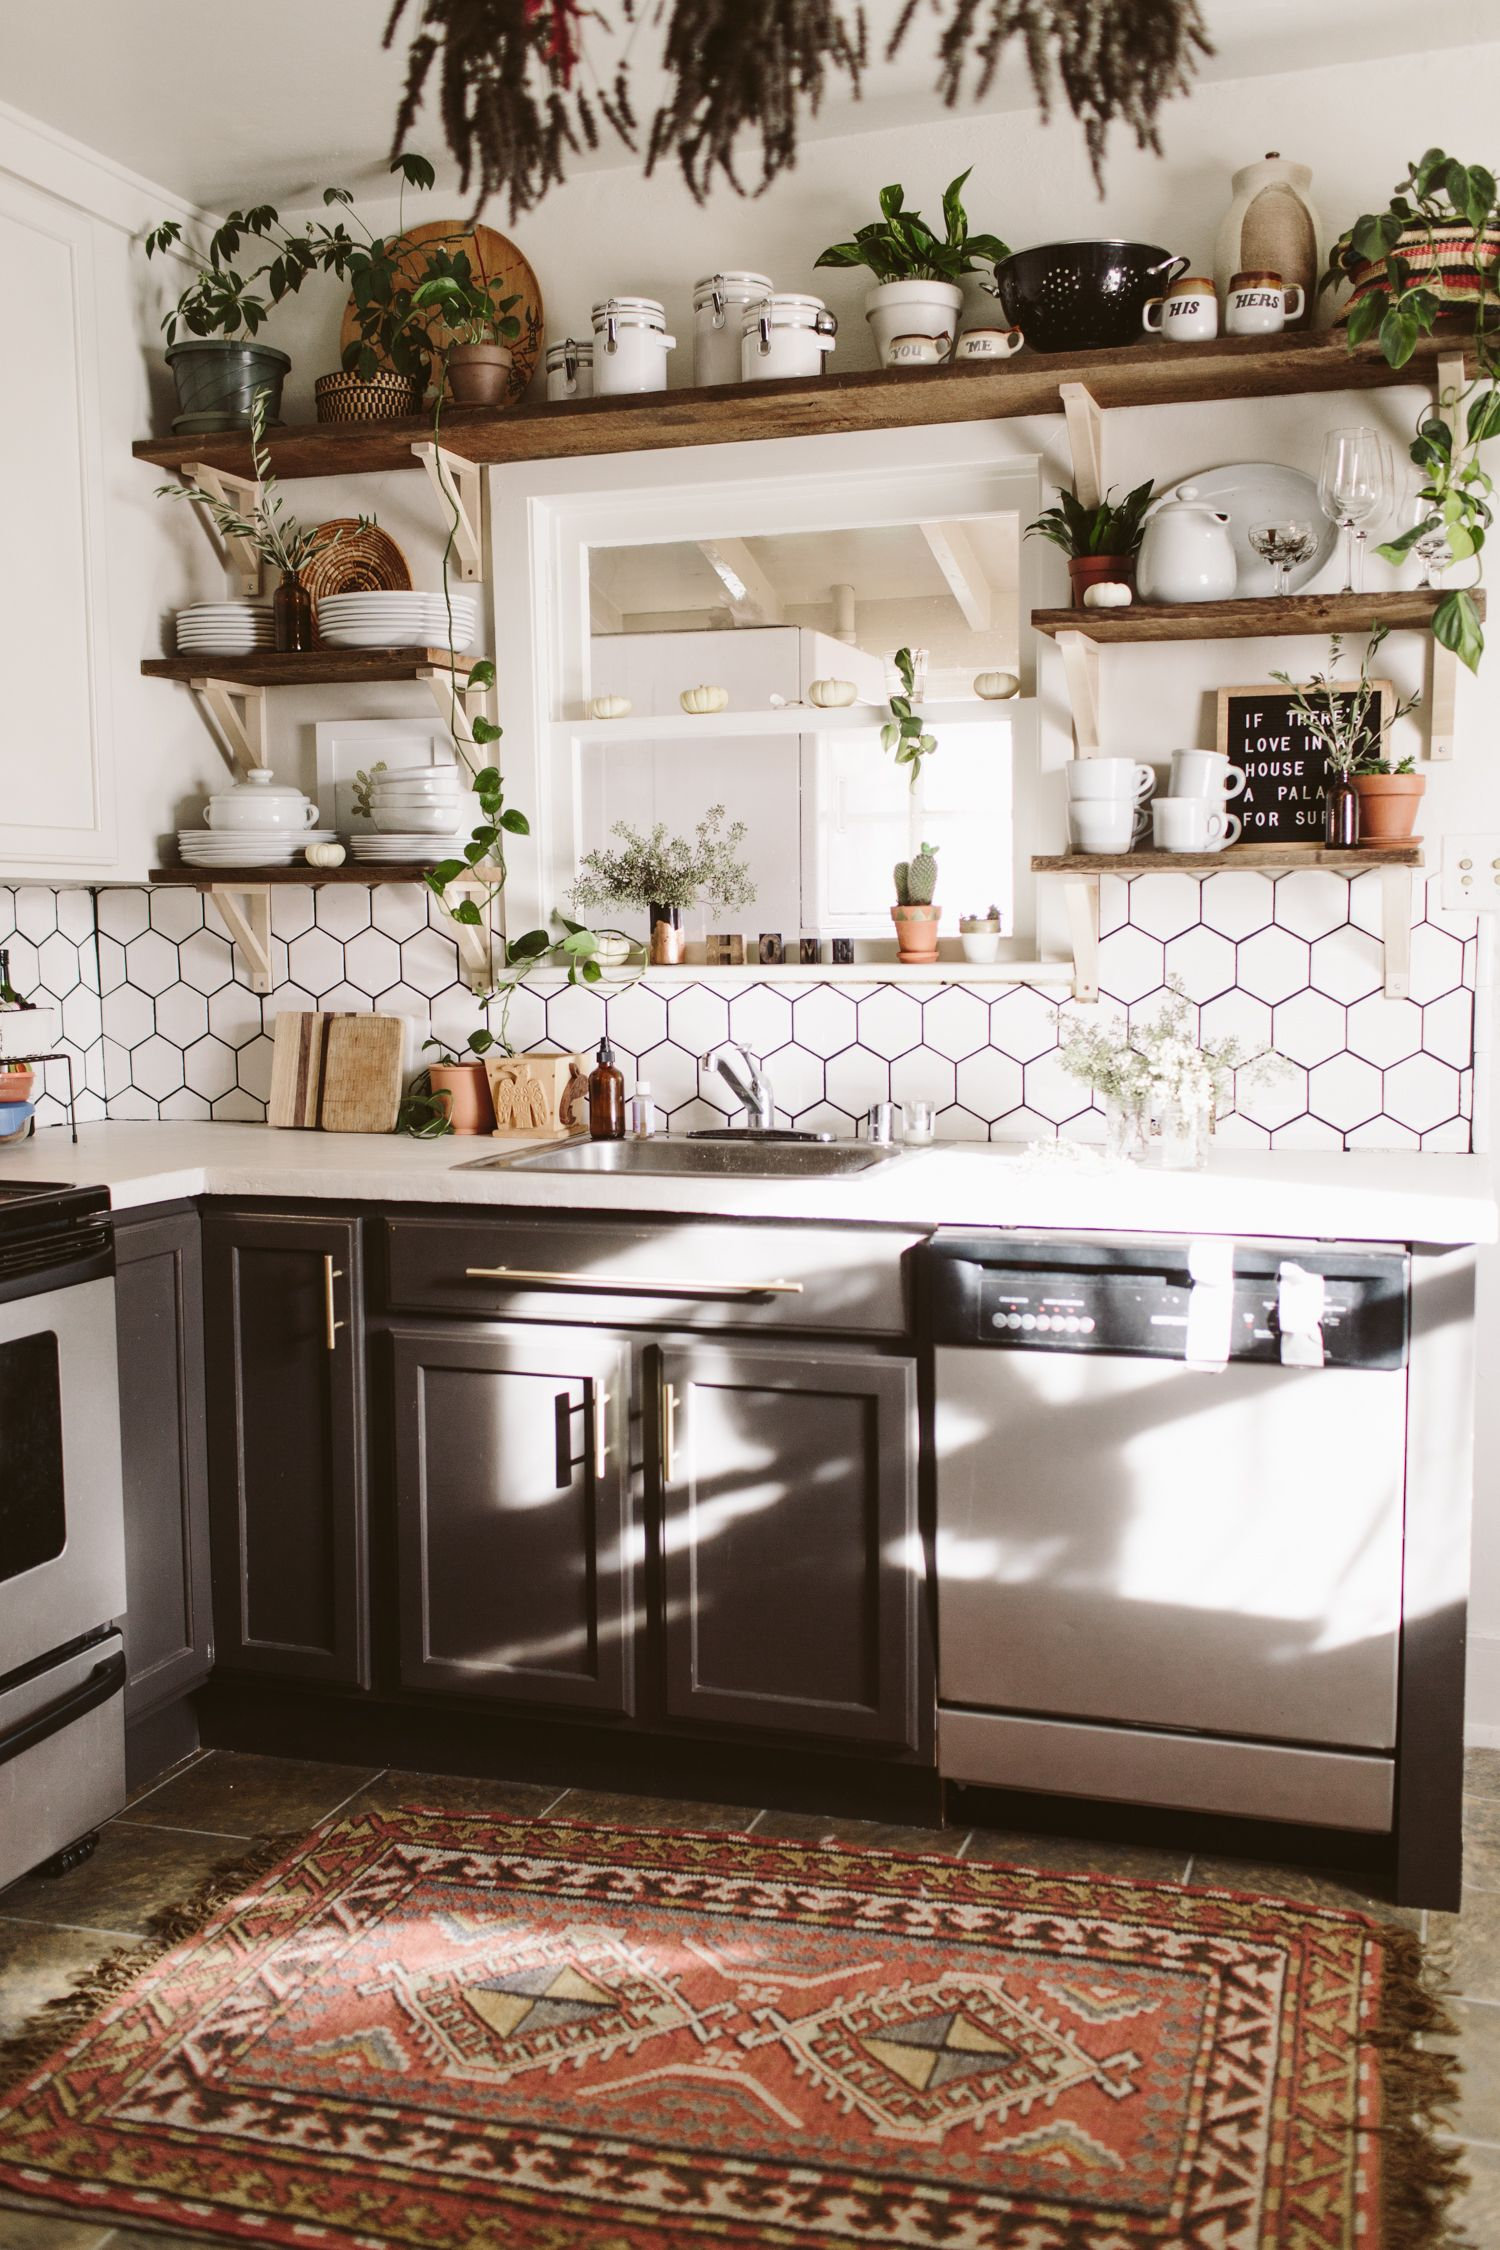 fresh light filled kitchen before after home decor kitchen kitchen remodel kitchen decor on e kitchen ideas id=37908